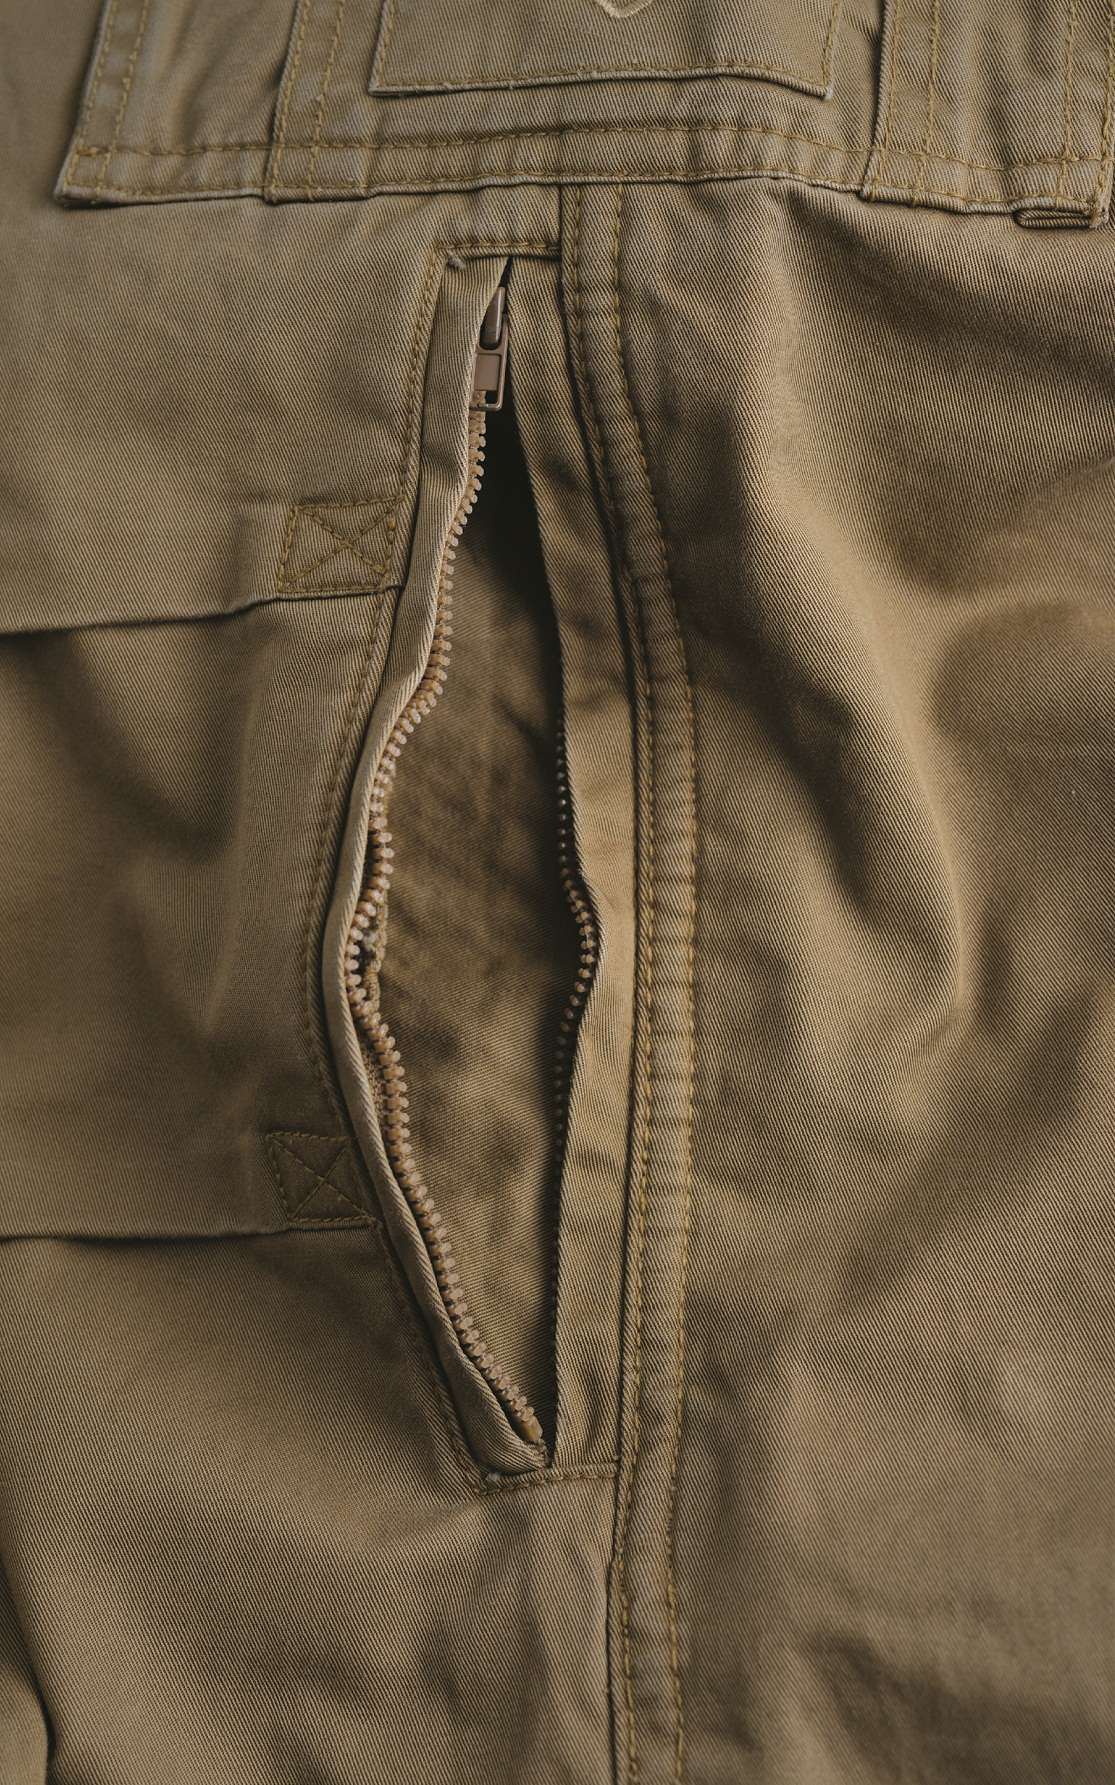 Mens Motorcycle Cargo Pants - Tan - with PEKEV armor lined 100% cotton - additional Zipper